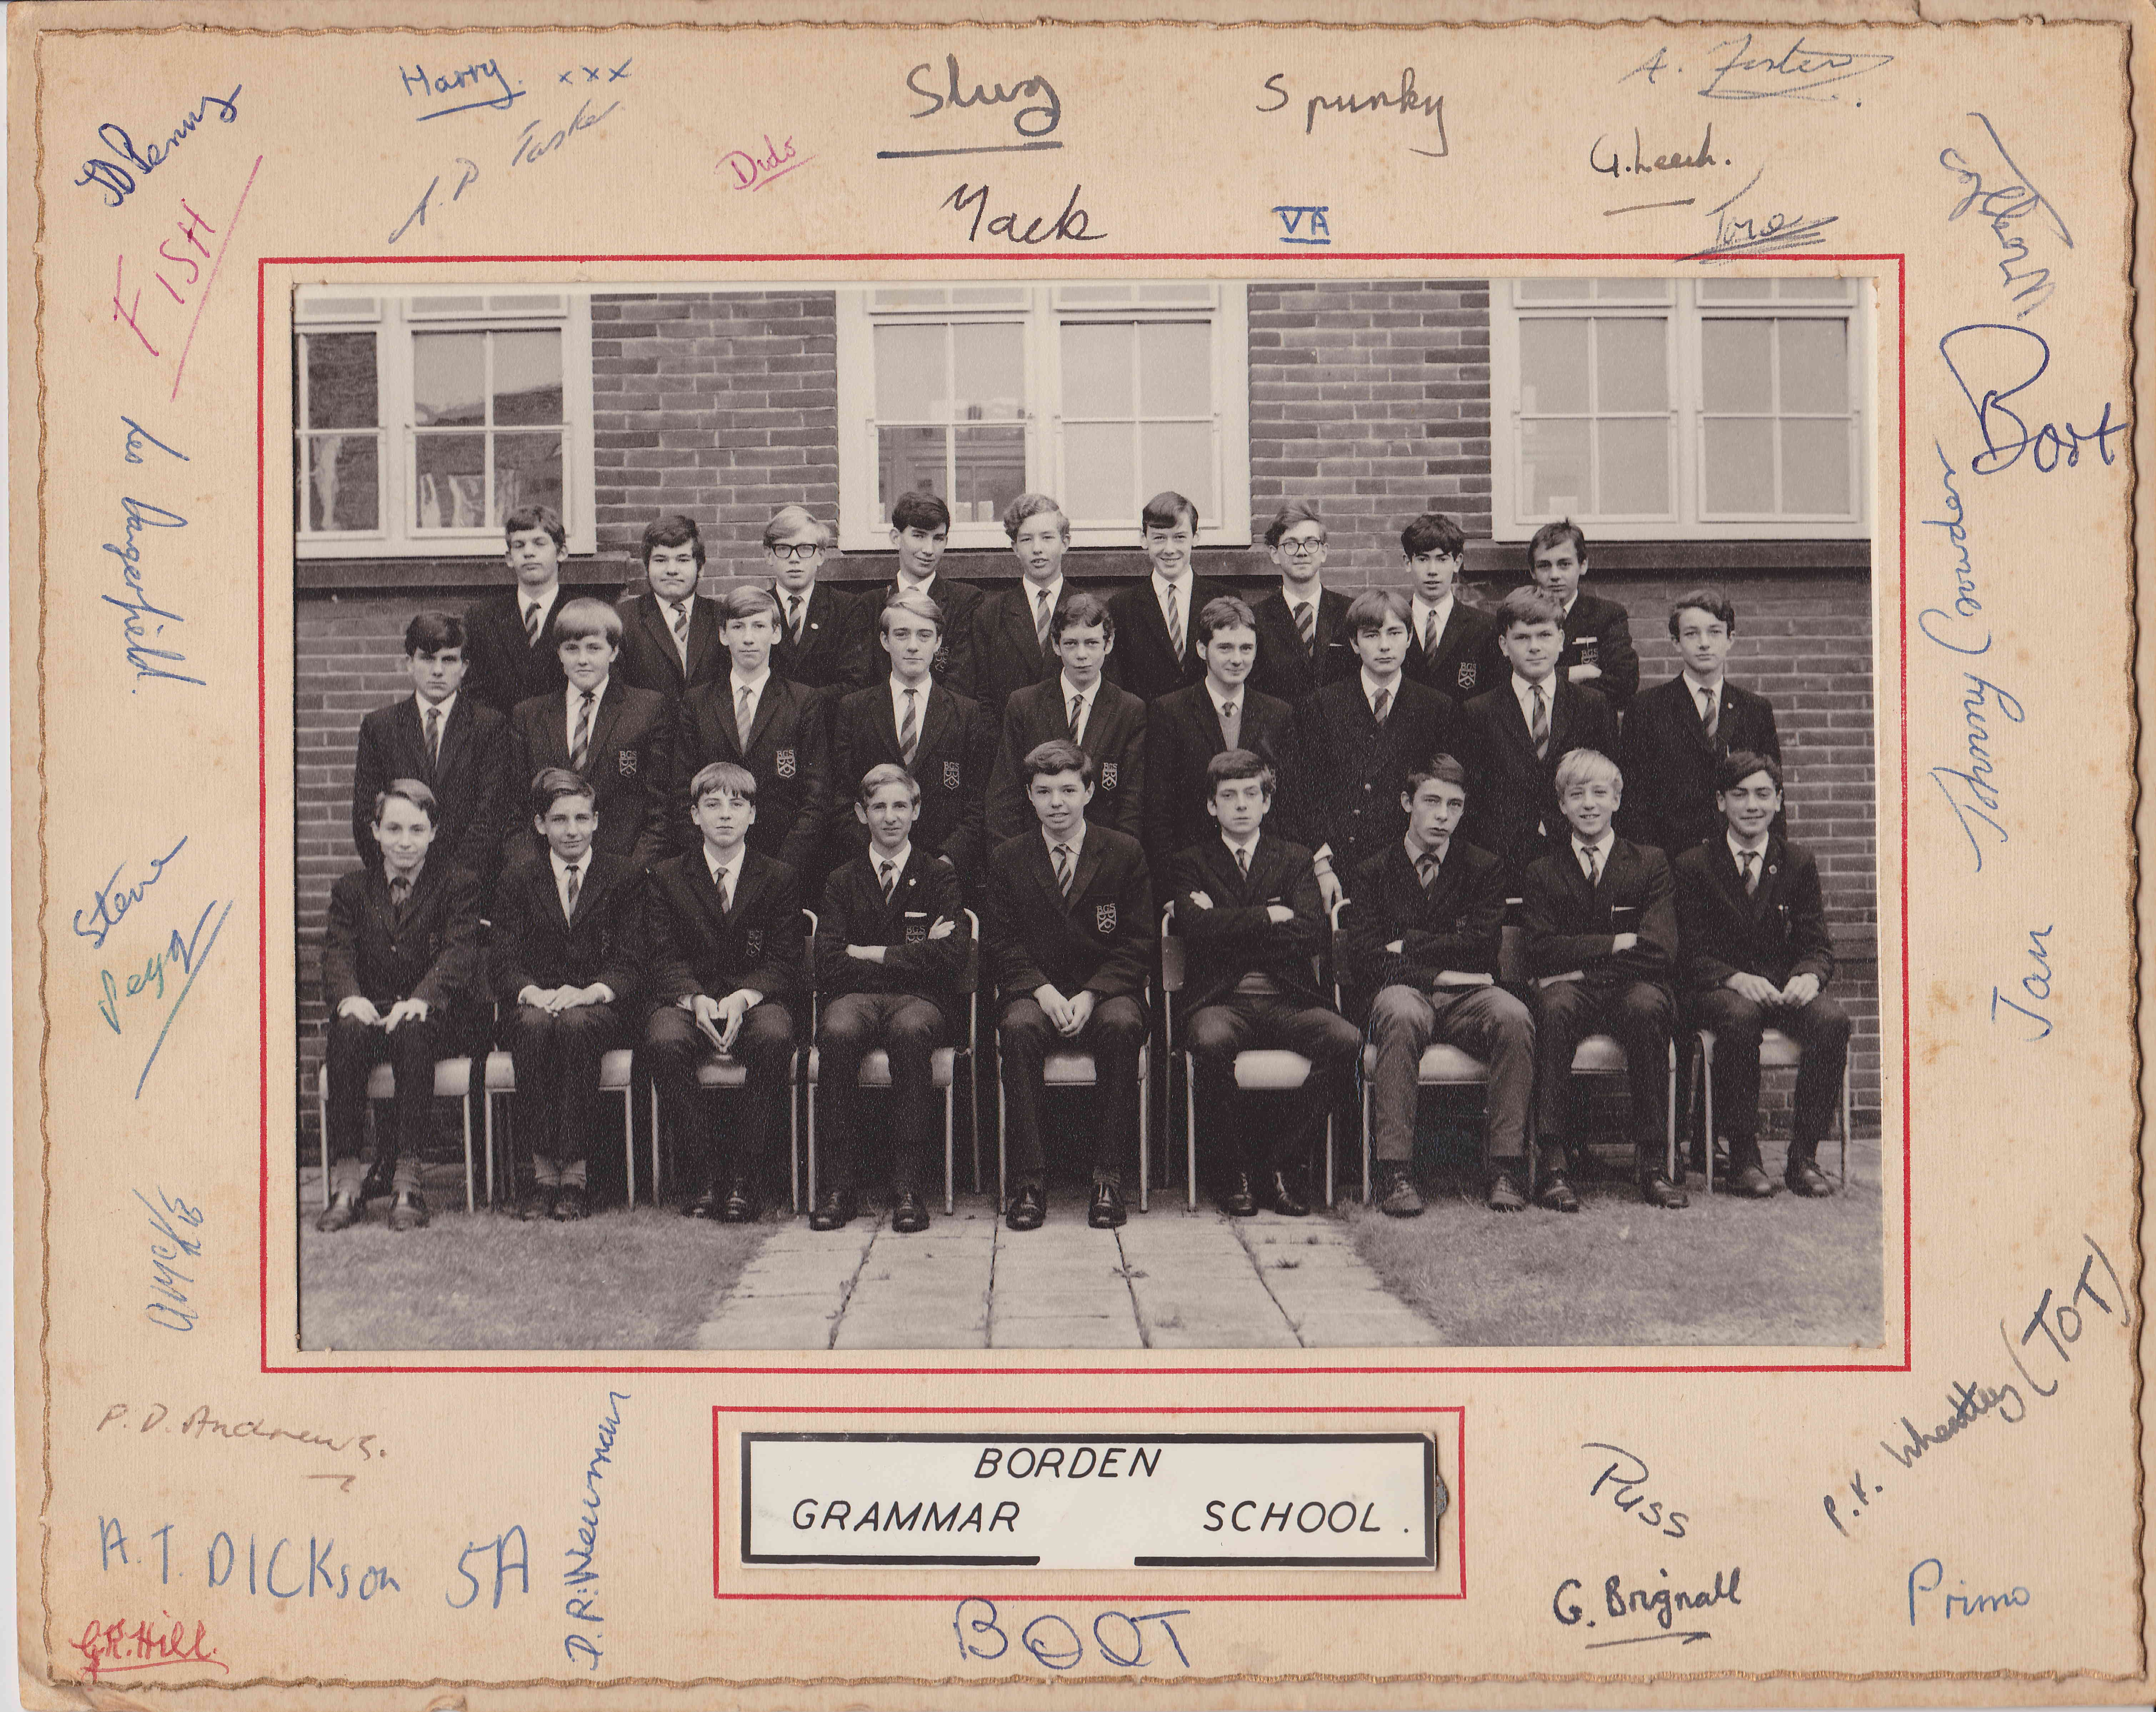 BGS 5th Form 1967 1